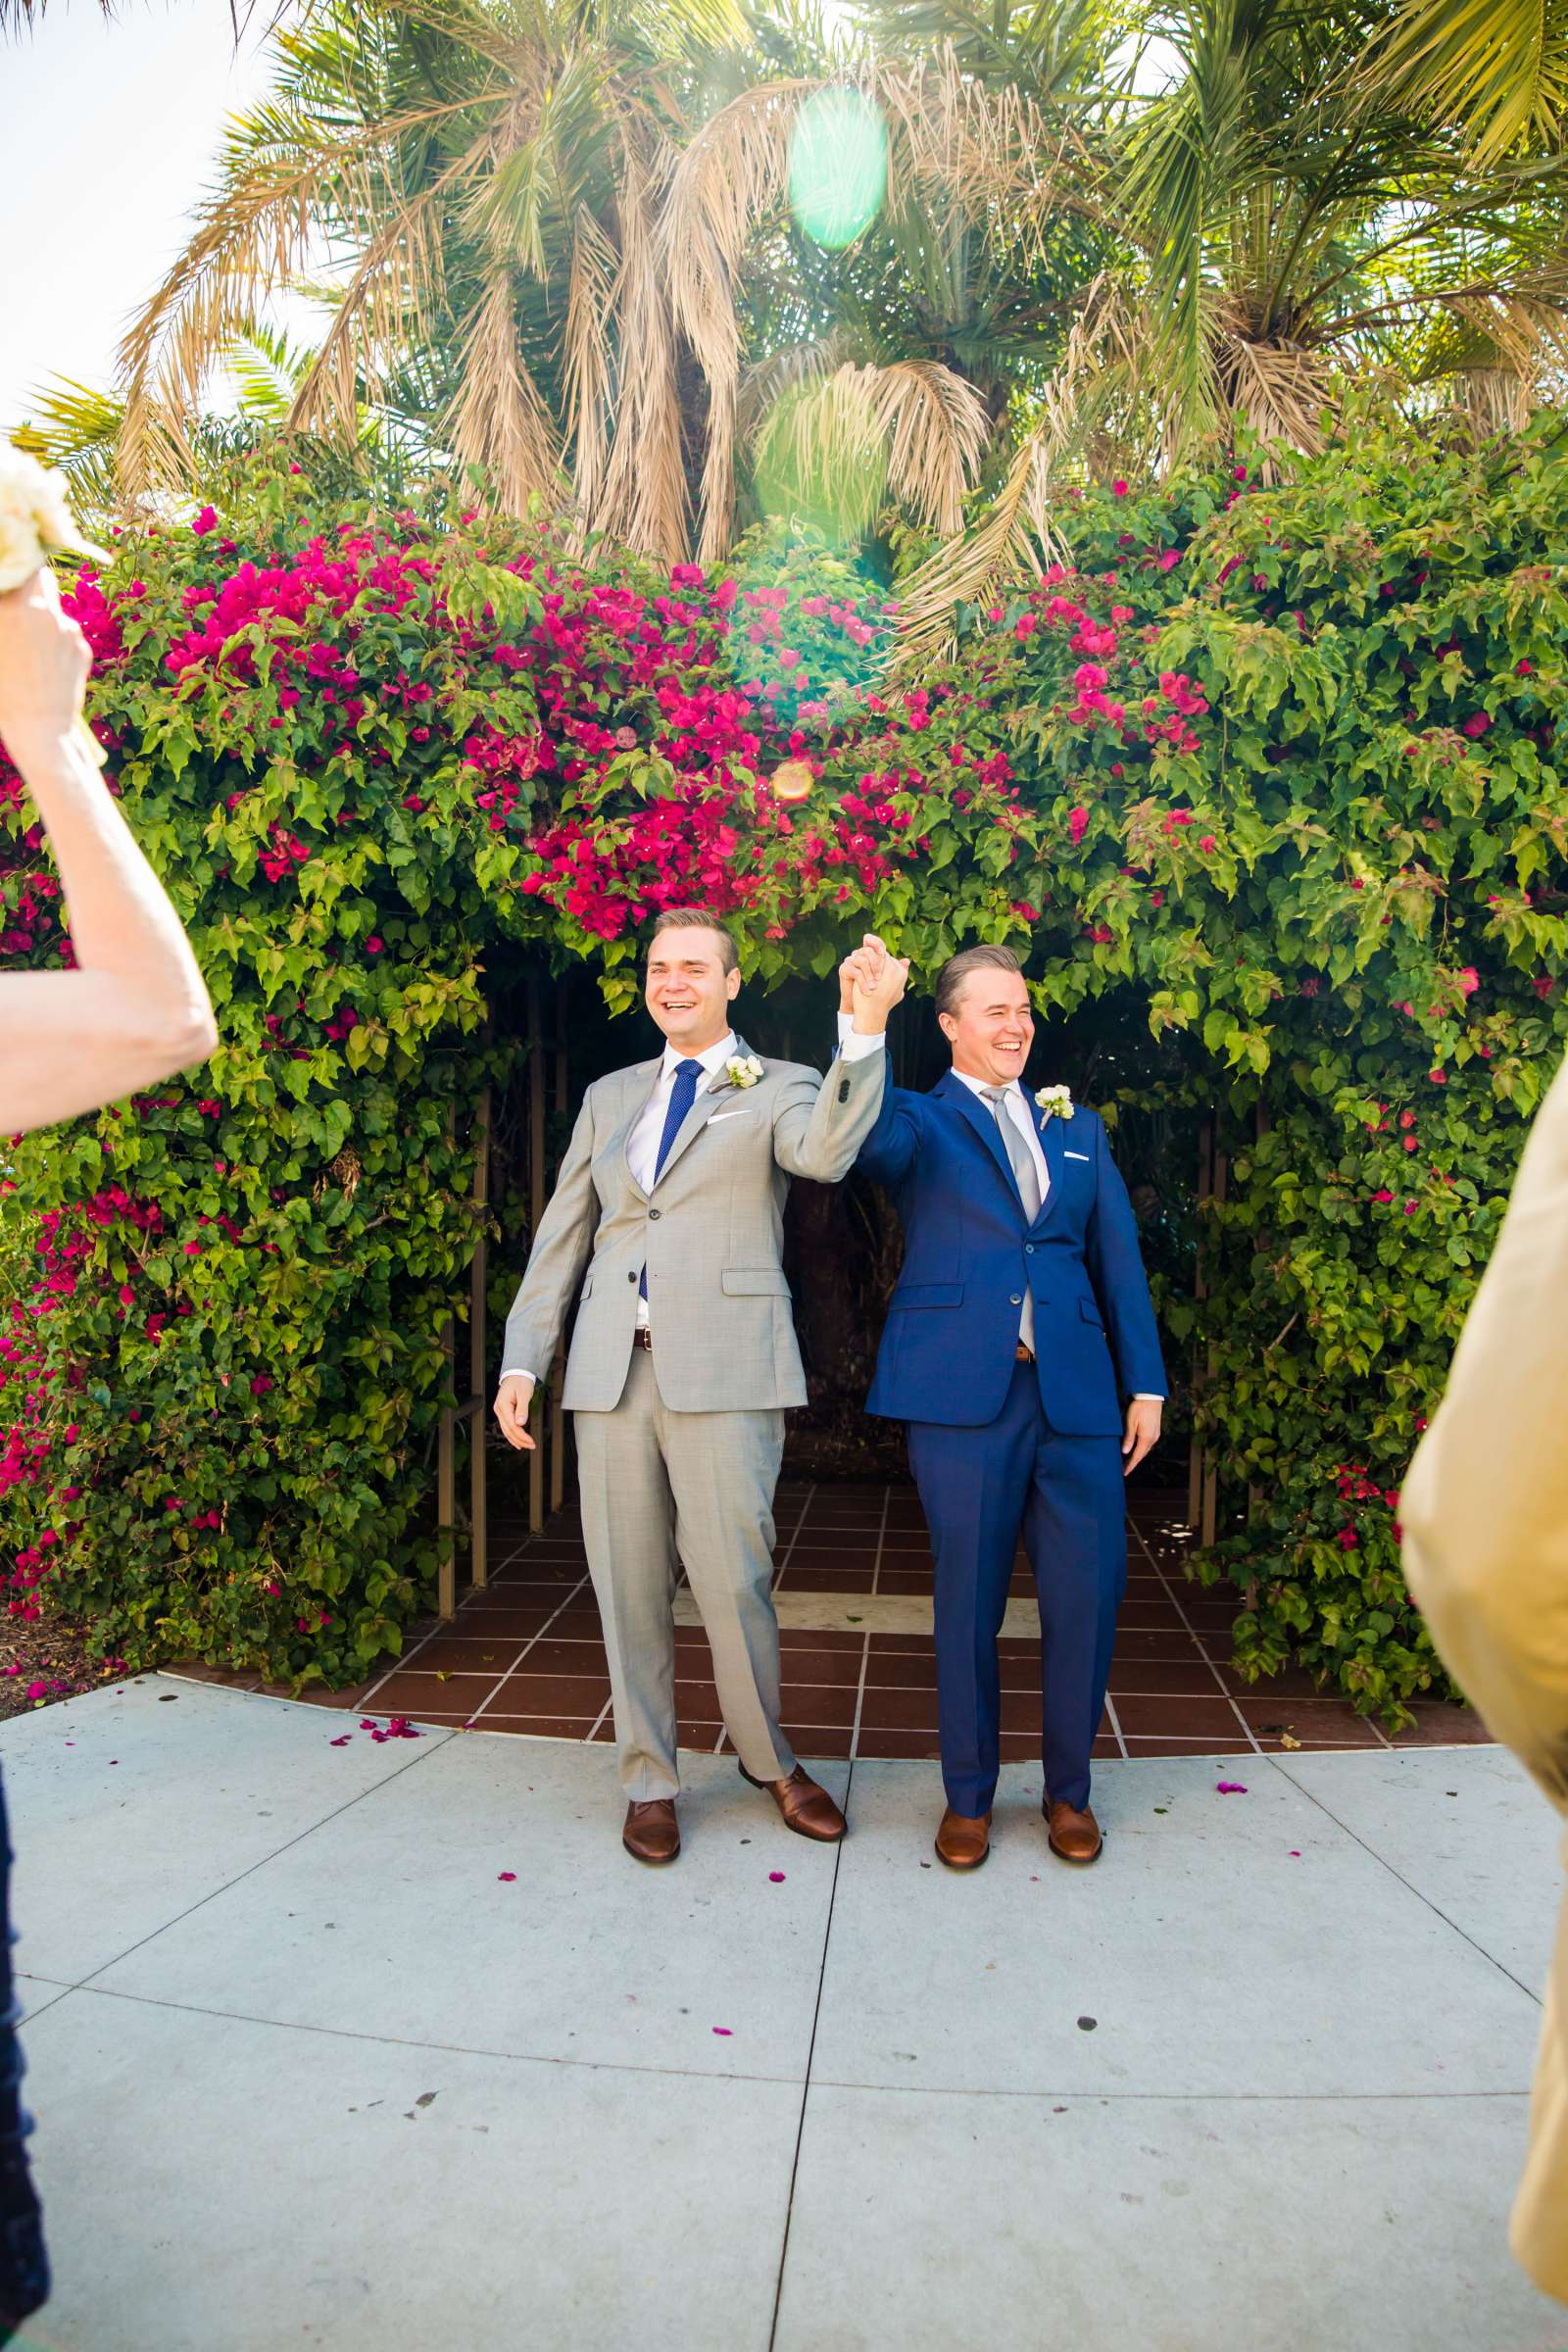 San Diego Courthouse Wedding coordinated by Emily Smiley, Eric and James Wedding Photo #377357 by True Photography